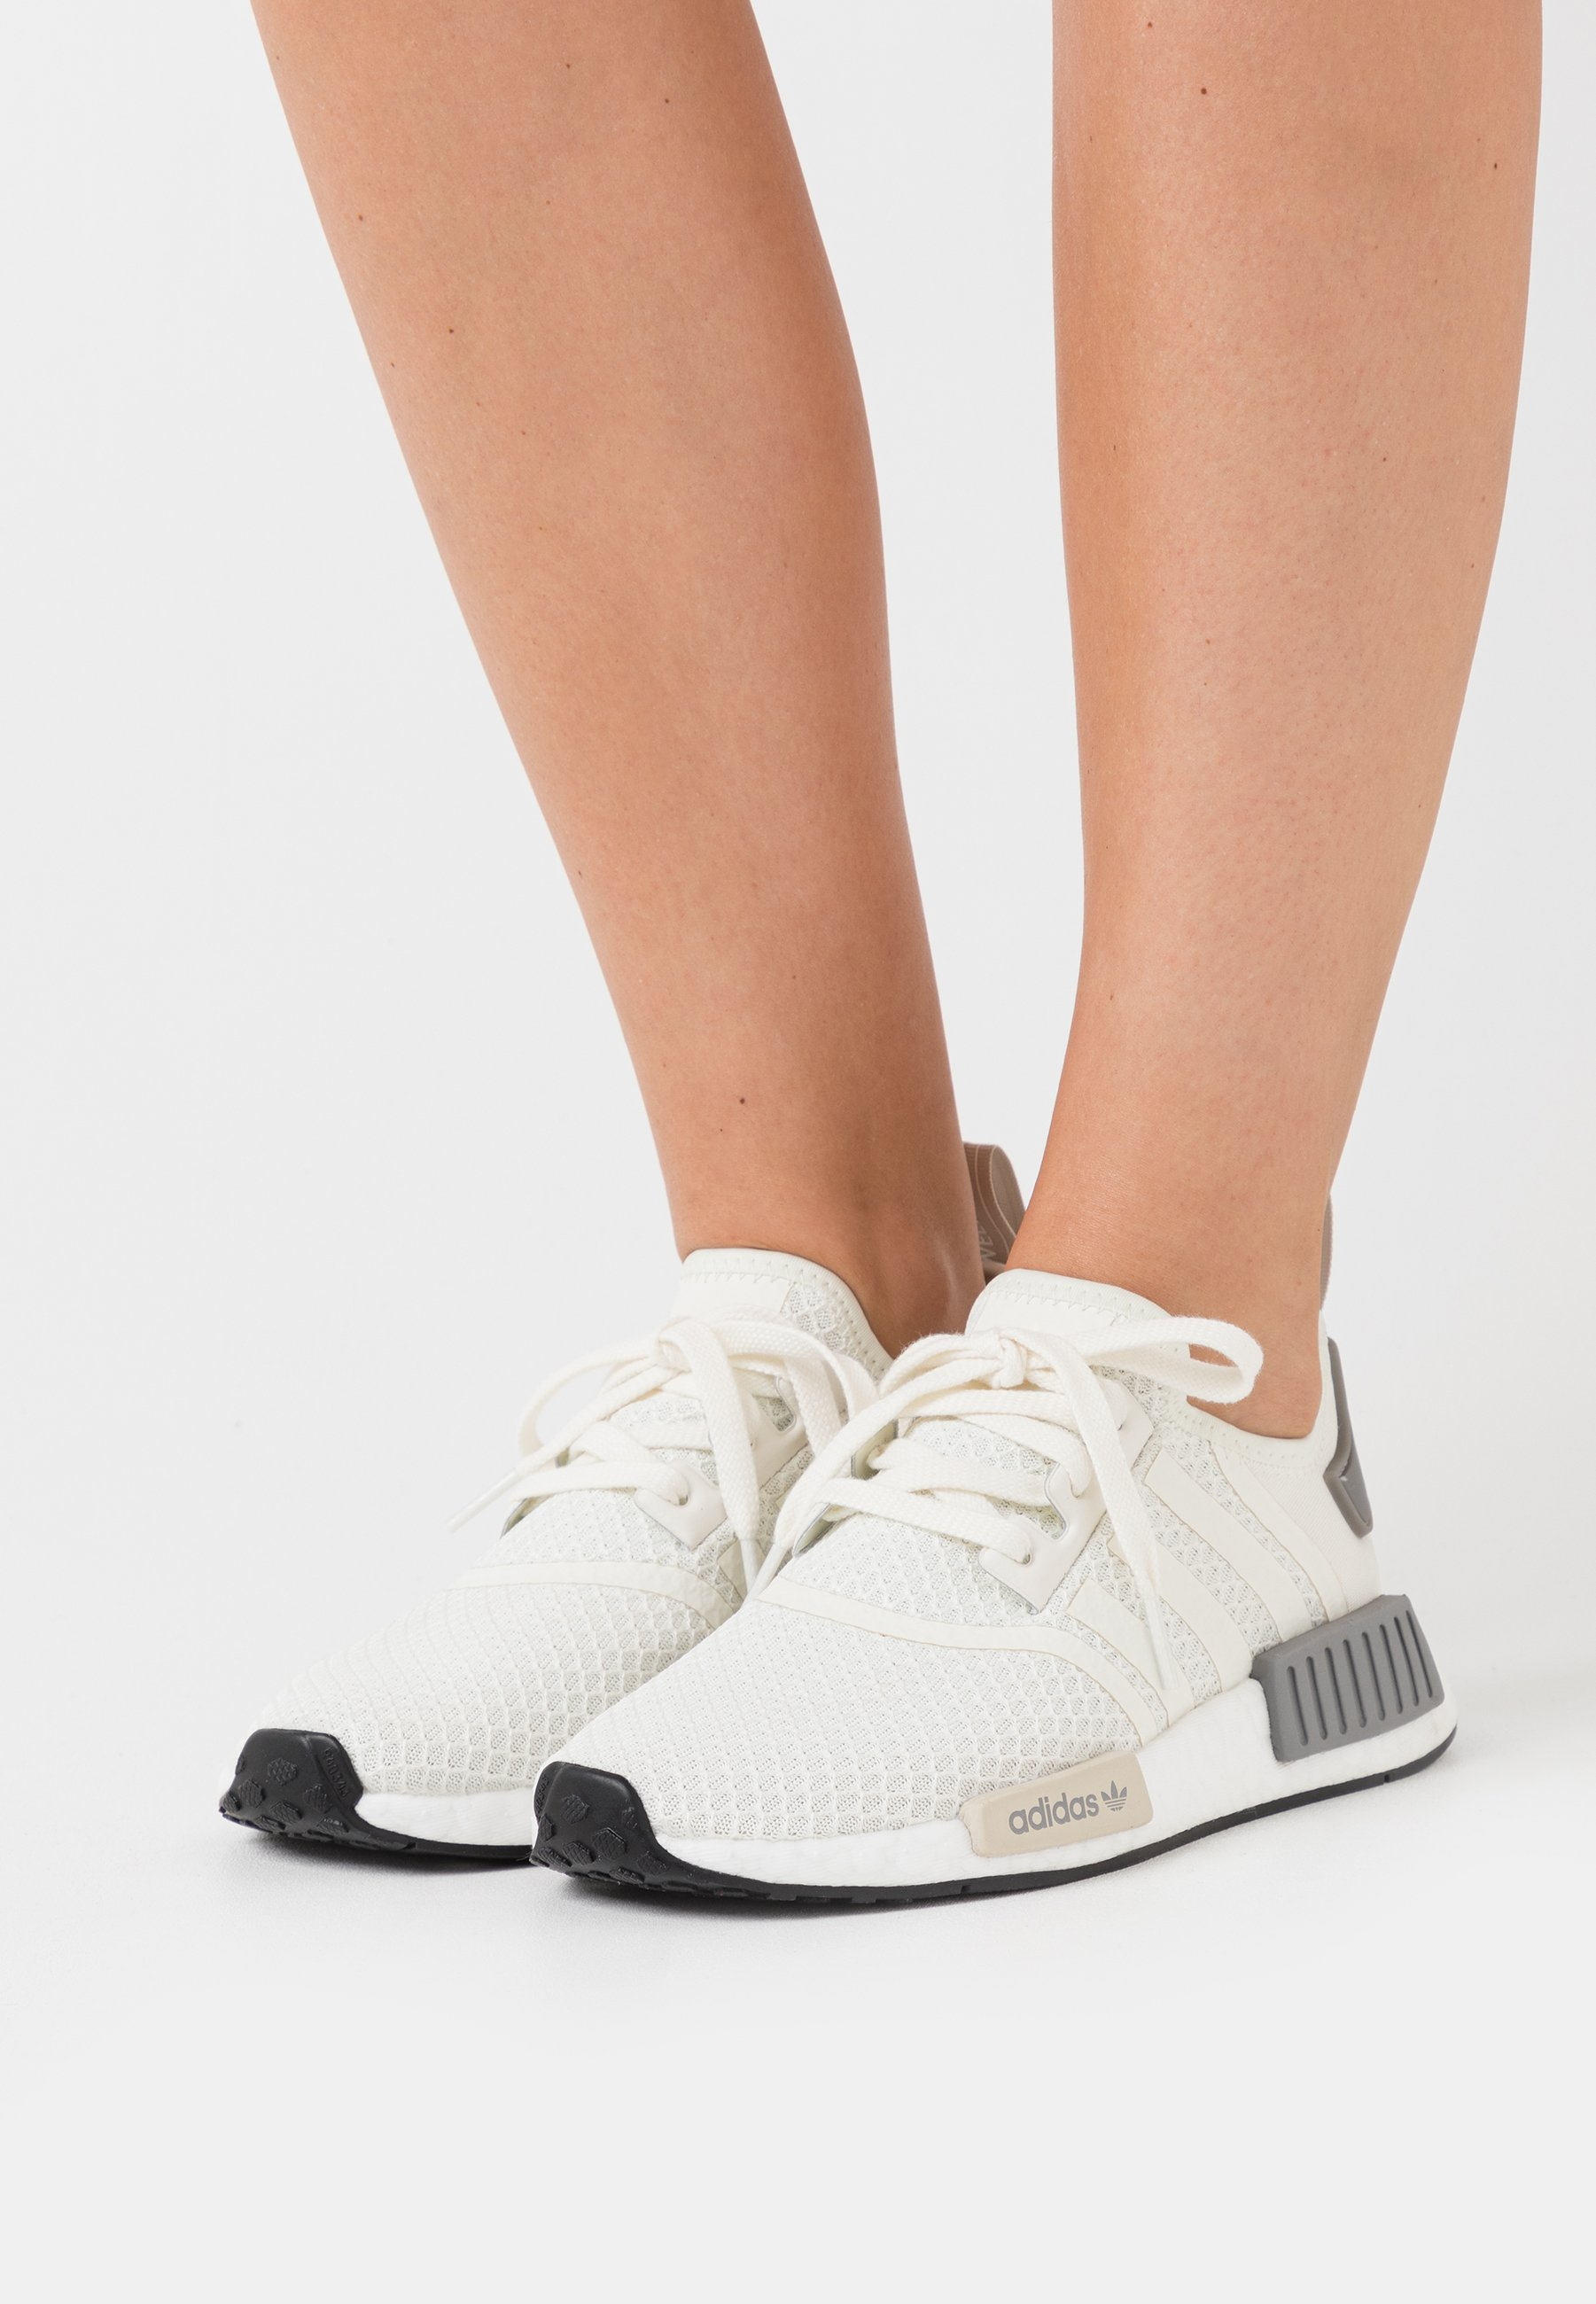 NMD_R1 BOOST SPORTS INSPIRED SHOES Sneakers offwhitecore browngrey three